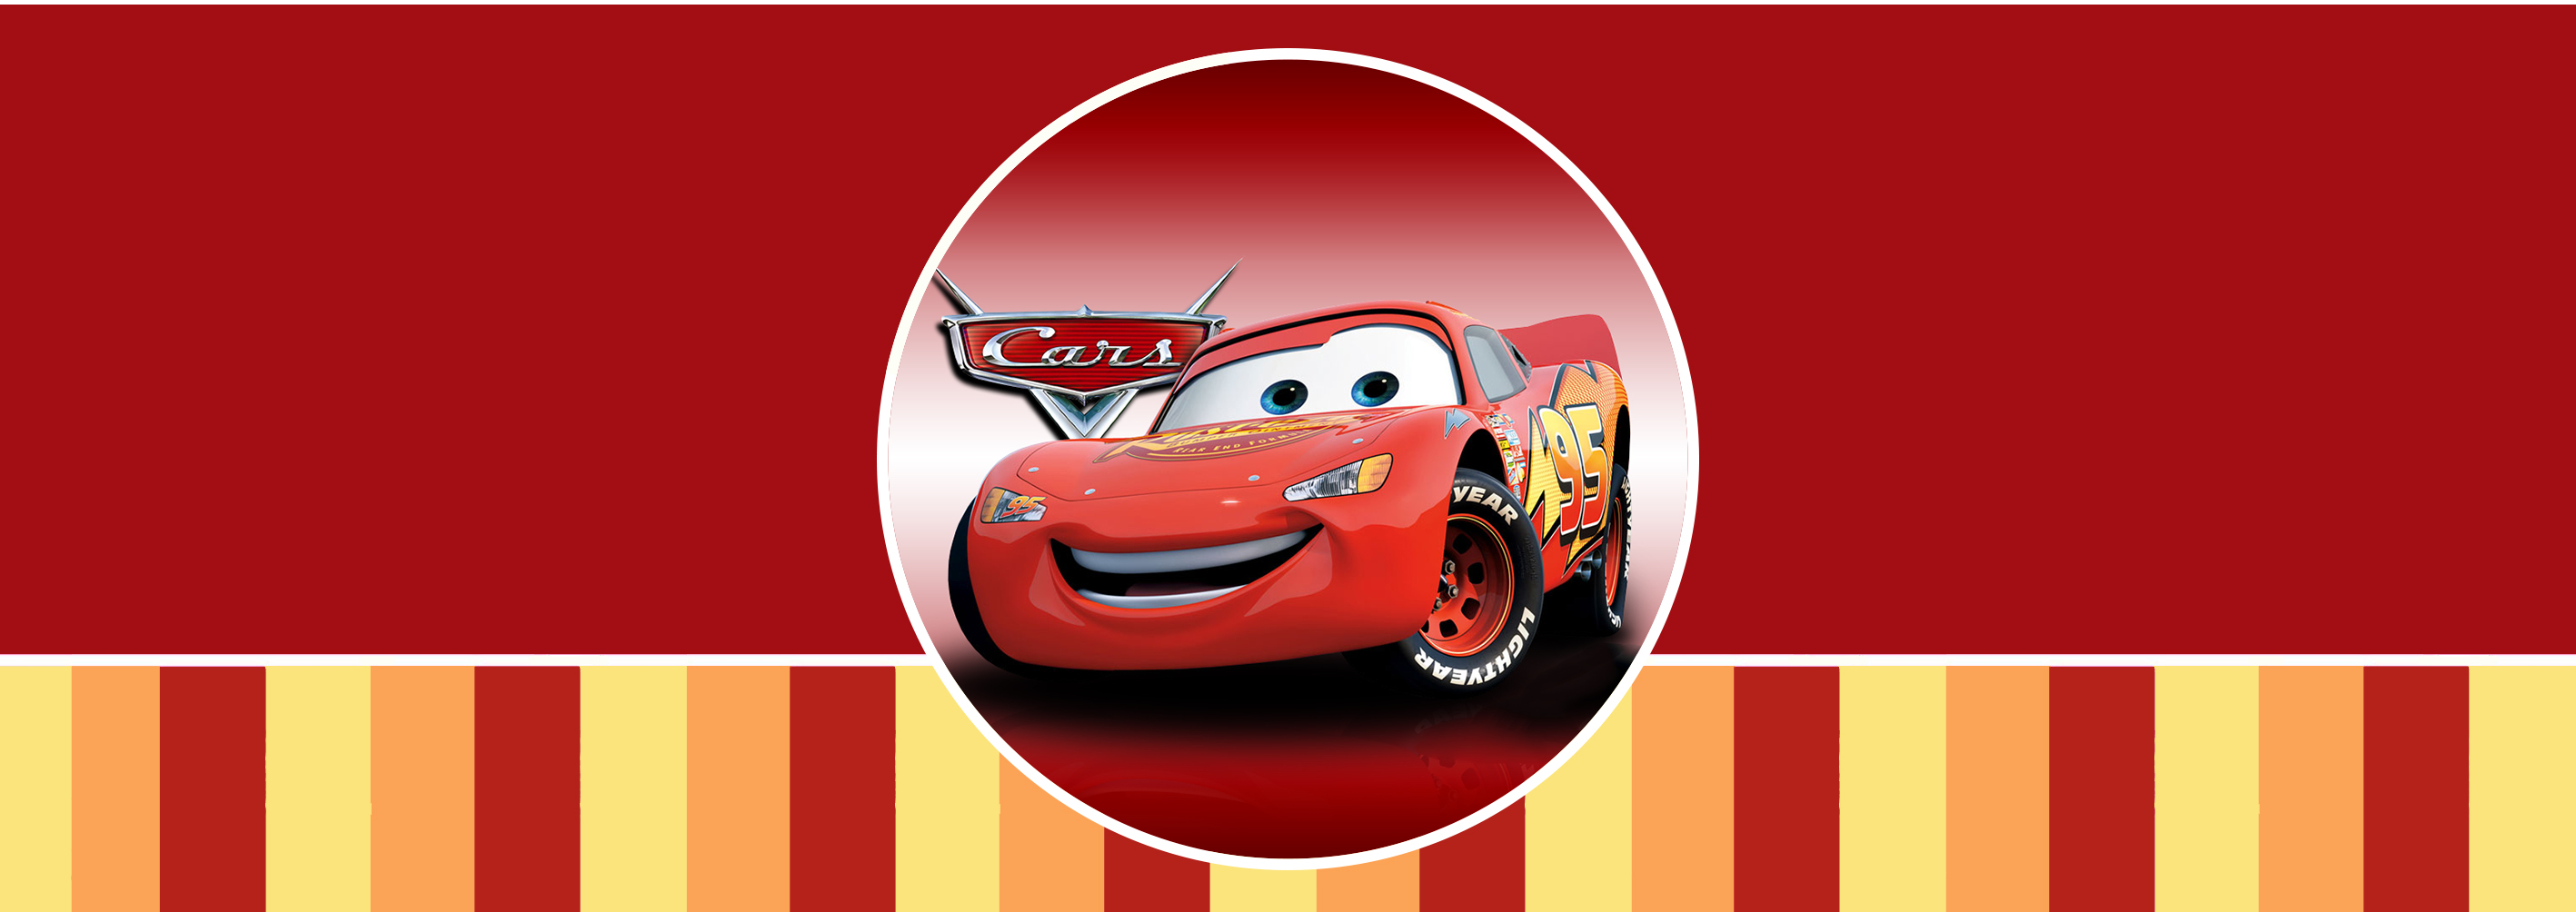 Lightning Mcqueen Images Mcqueen Print Cup Hd Wallpaper And